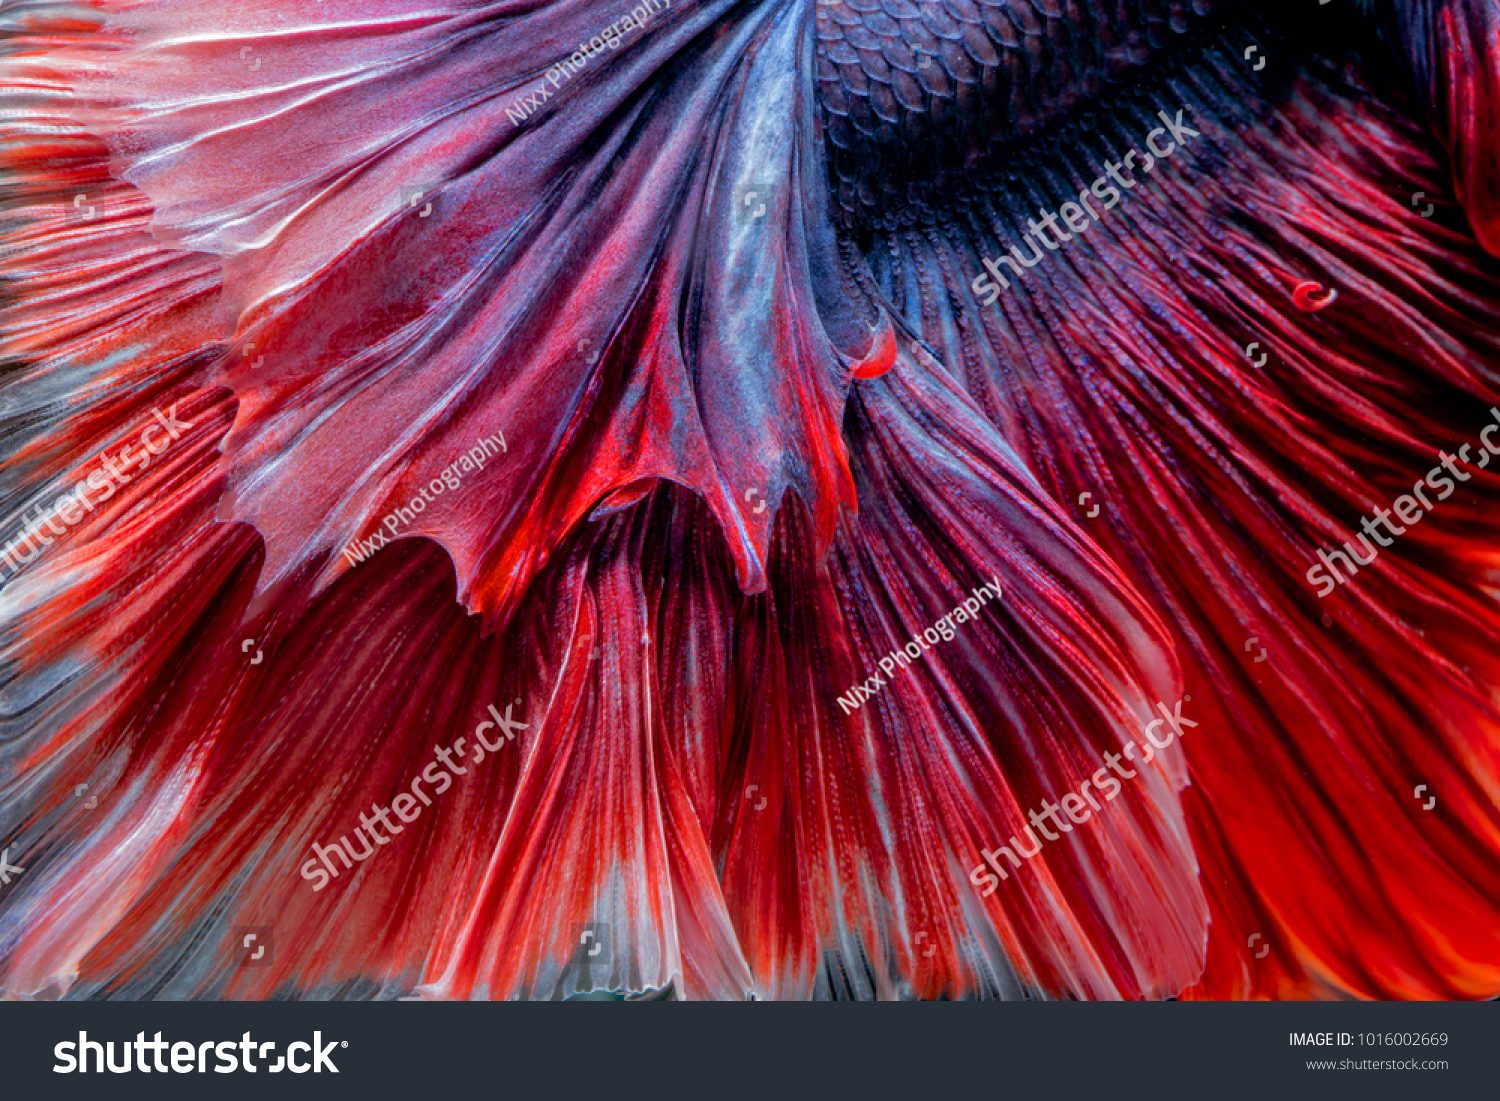 Abstrack Close Photo Colorful Texture Betta Stock Photo (Royalty ...